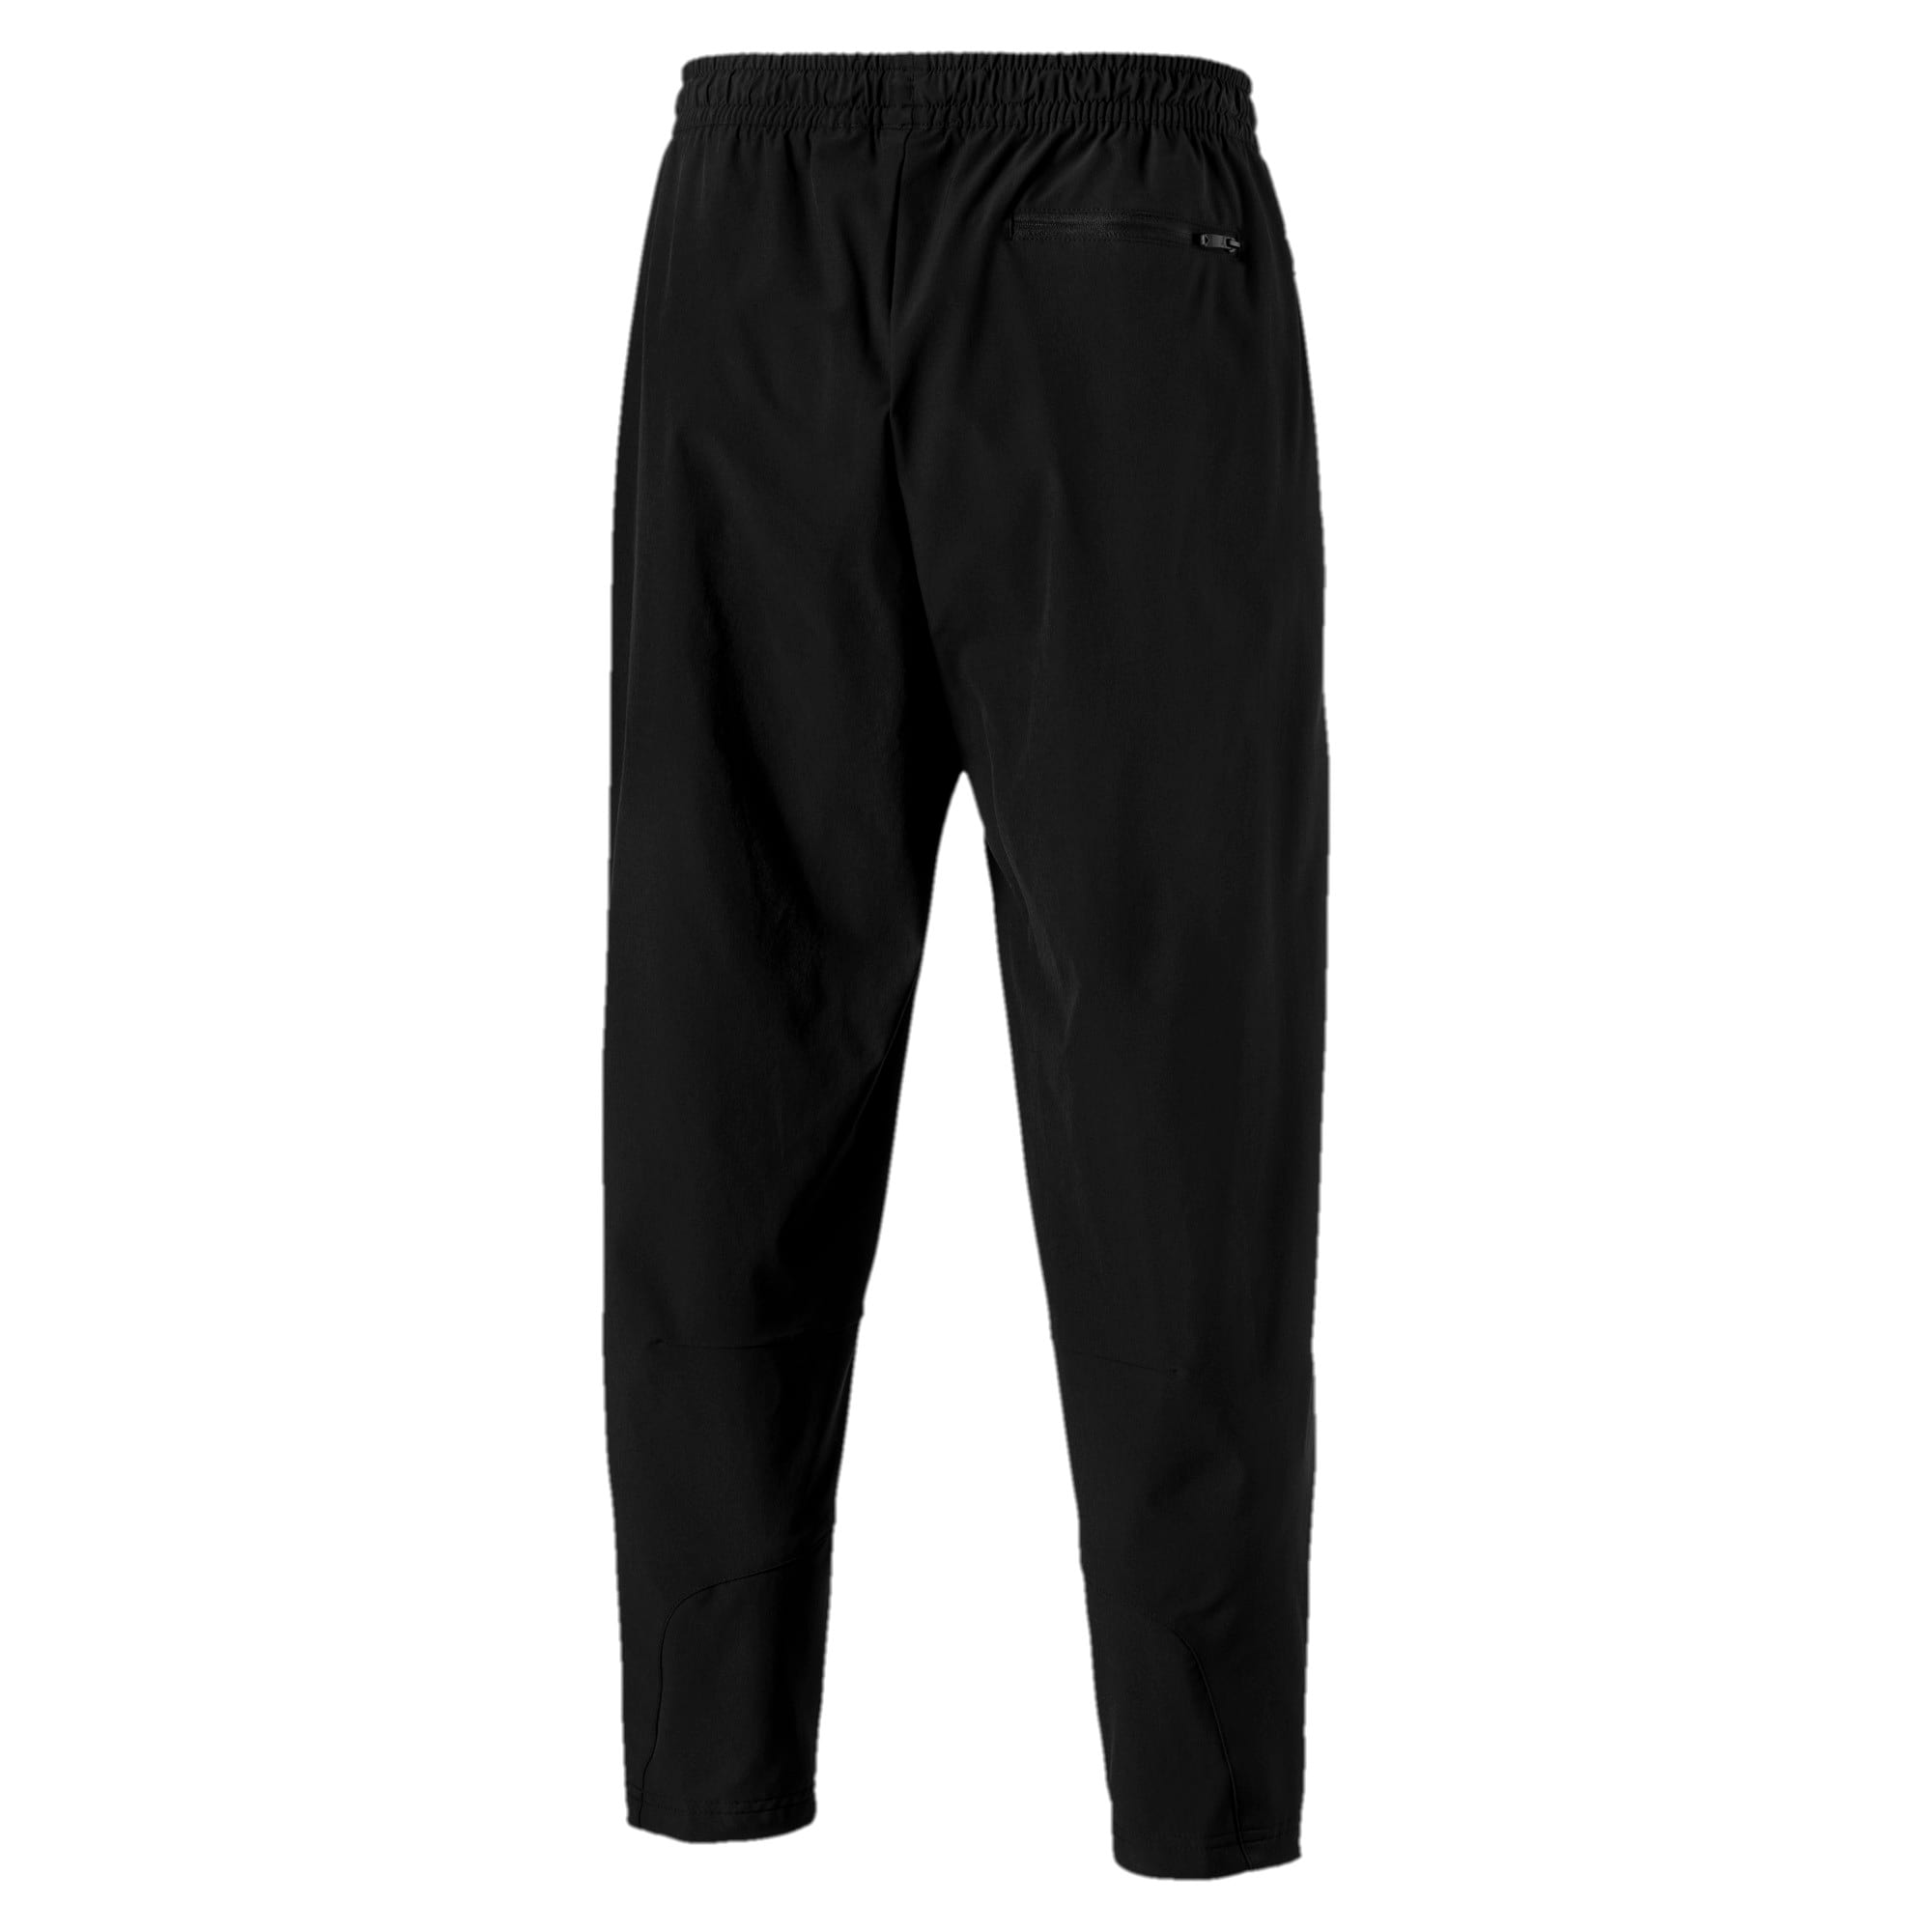 Thumbnail 5 of Scuderia Ferrari Life Men's Sweatpants, Puma Black, medium